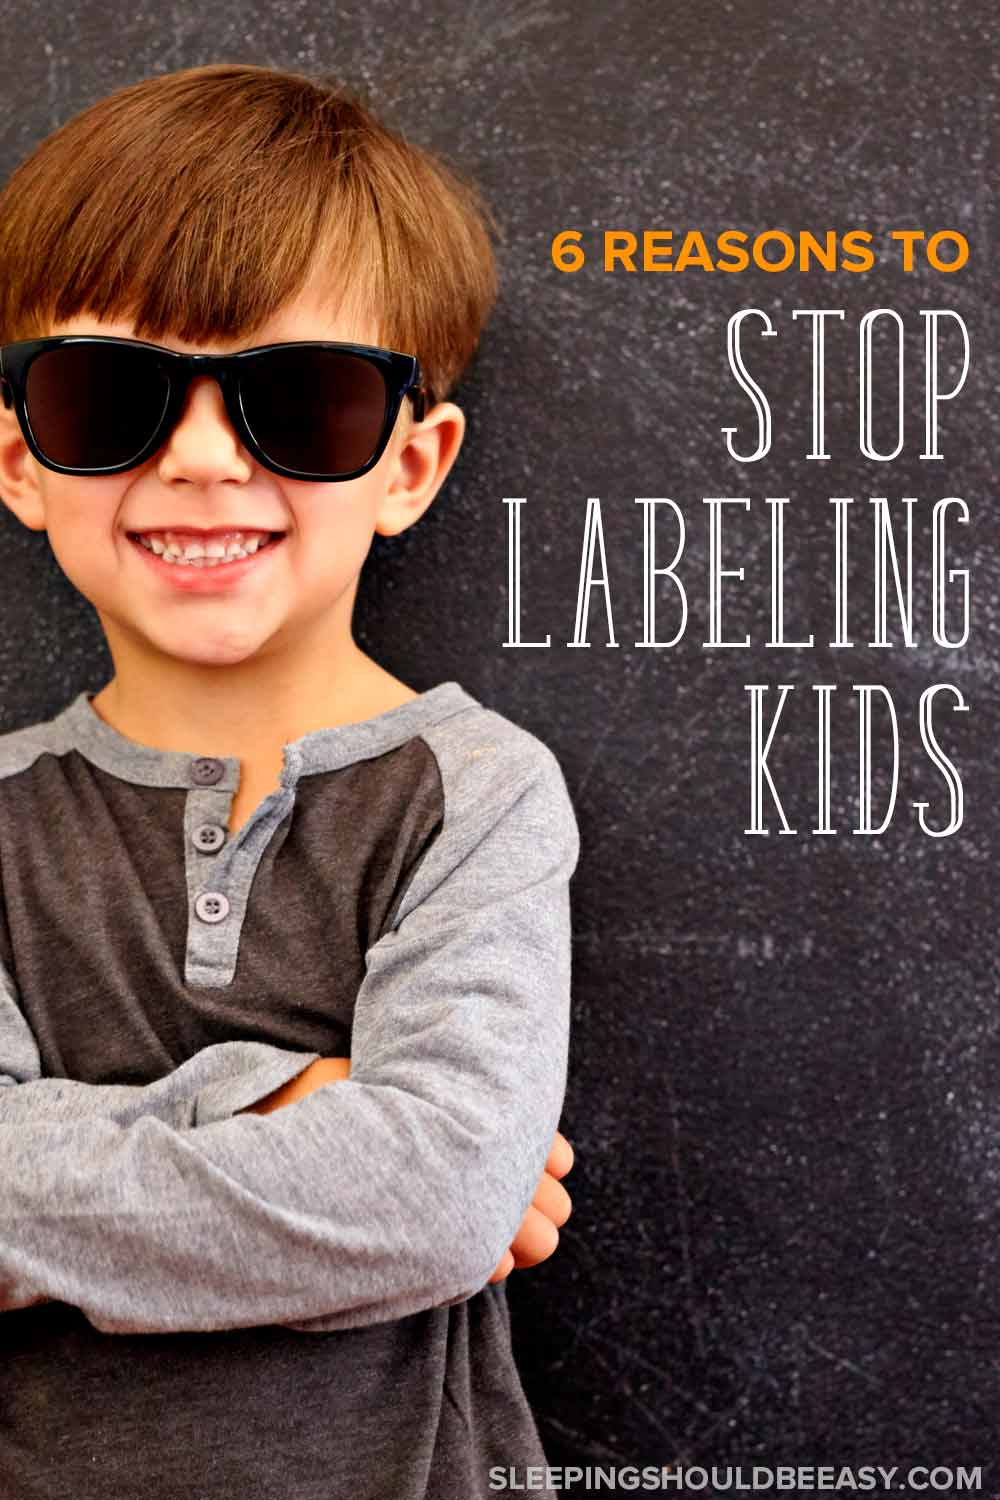 6 reasons to stop labeling kids